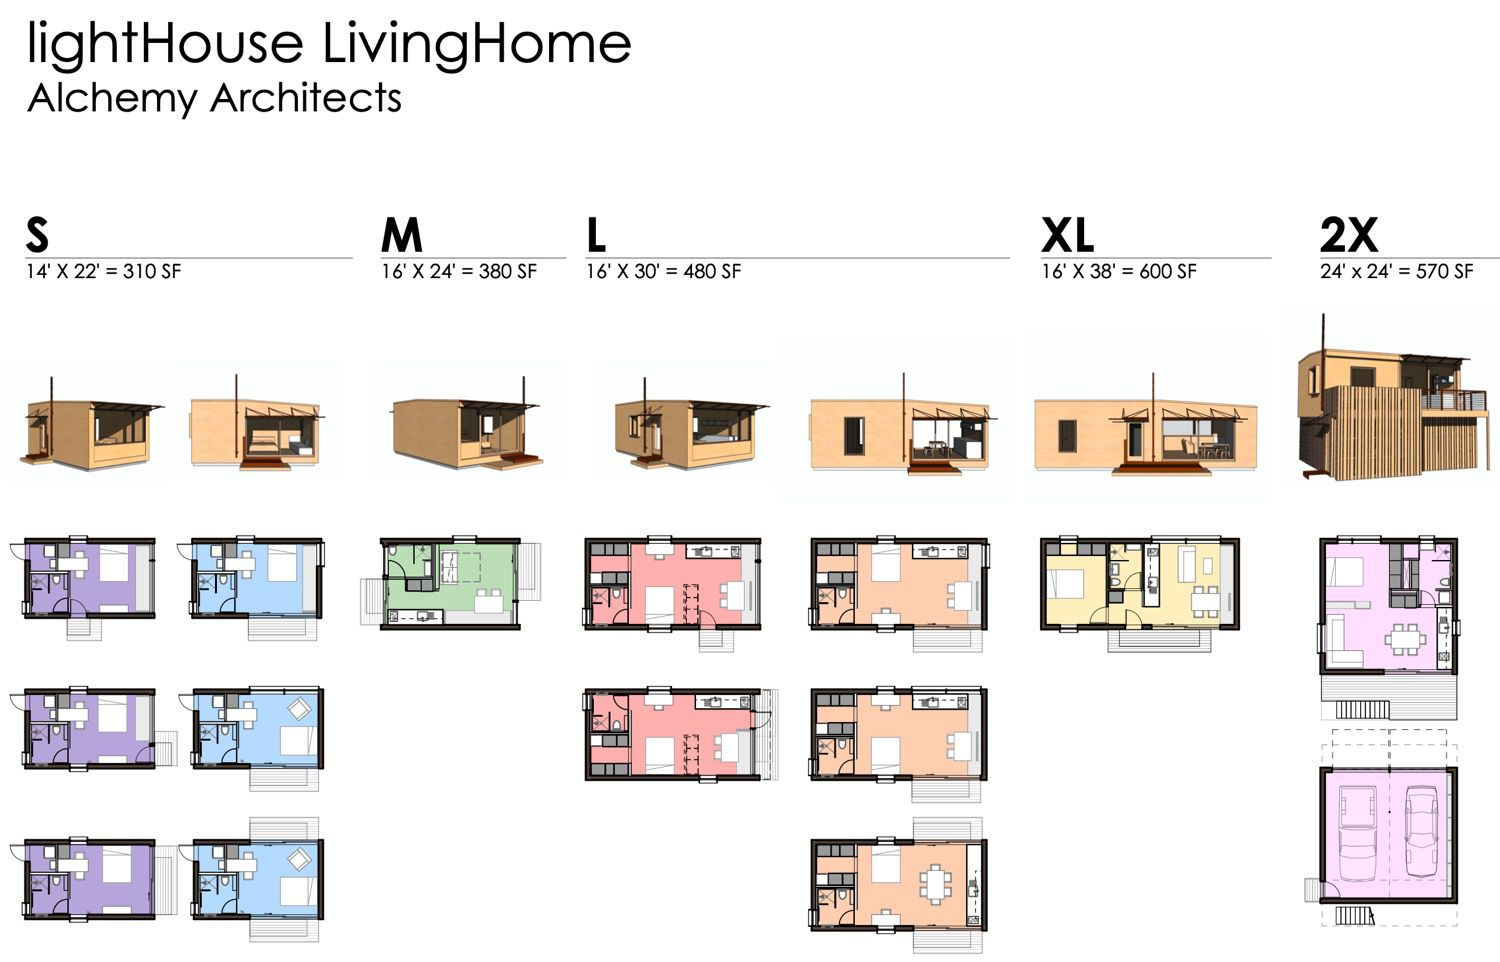 Comparison chart of sizes small through 2X floor plans